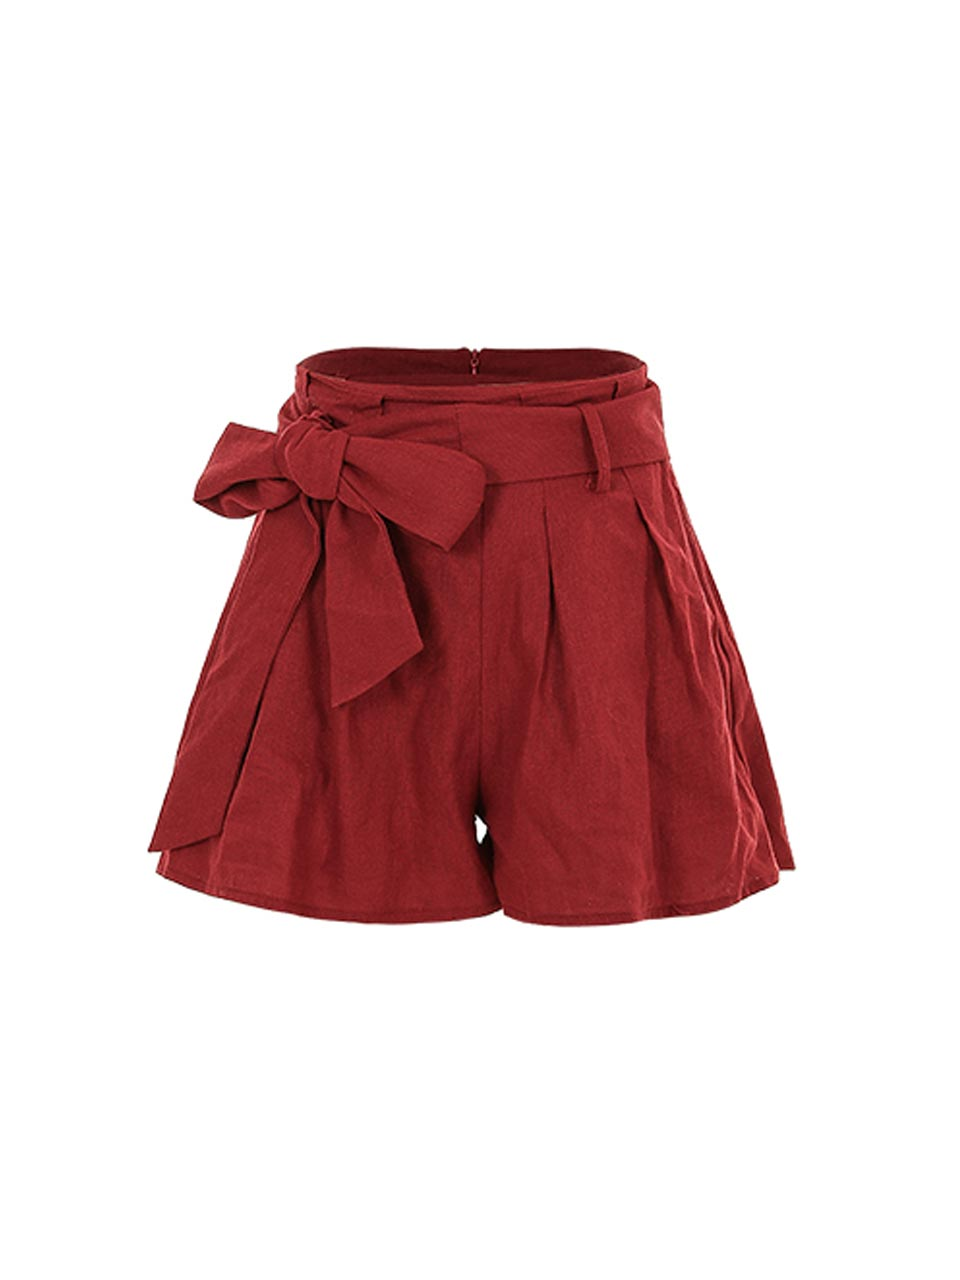 GUKAGhini Ribbon-Belt Short Pants